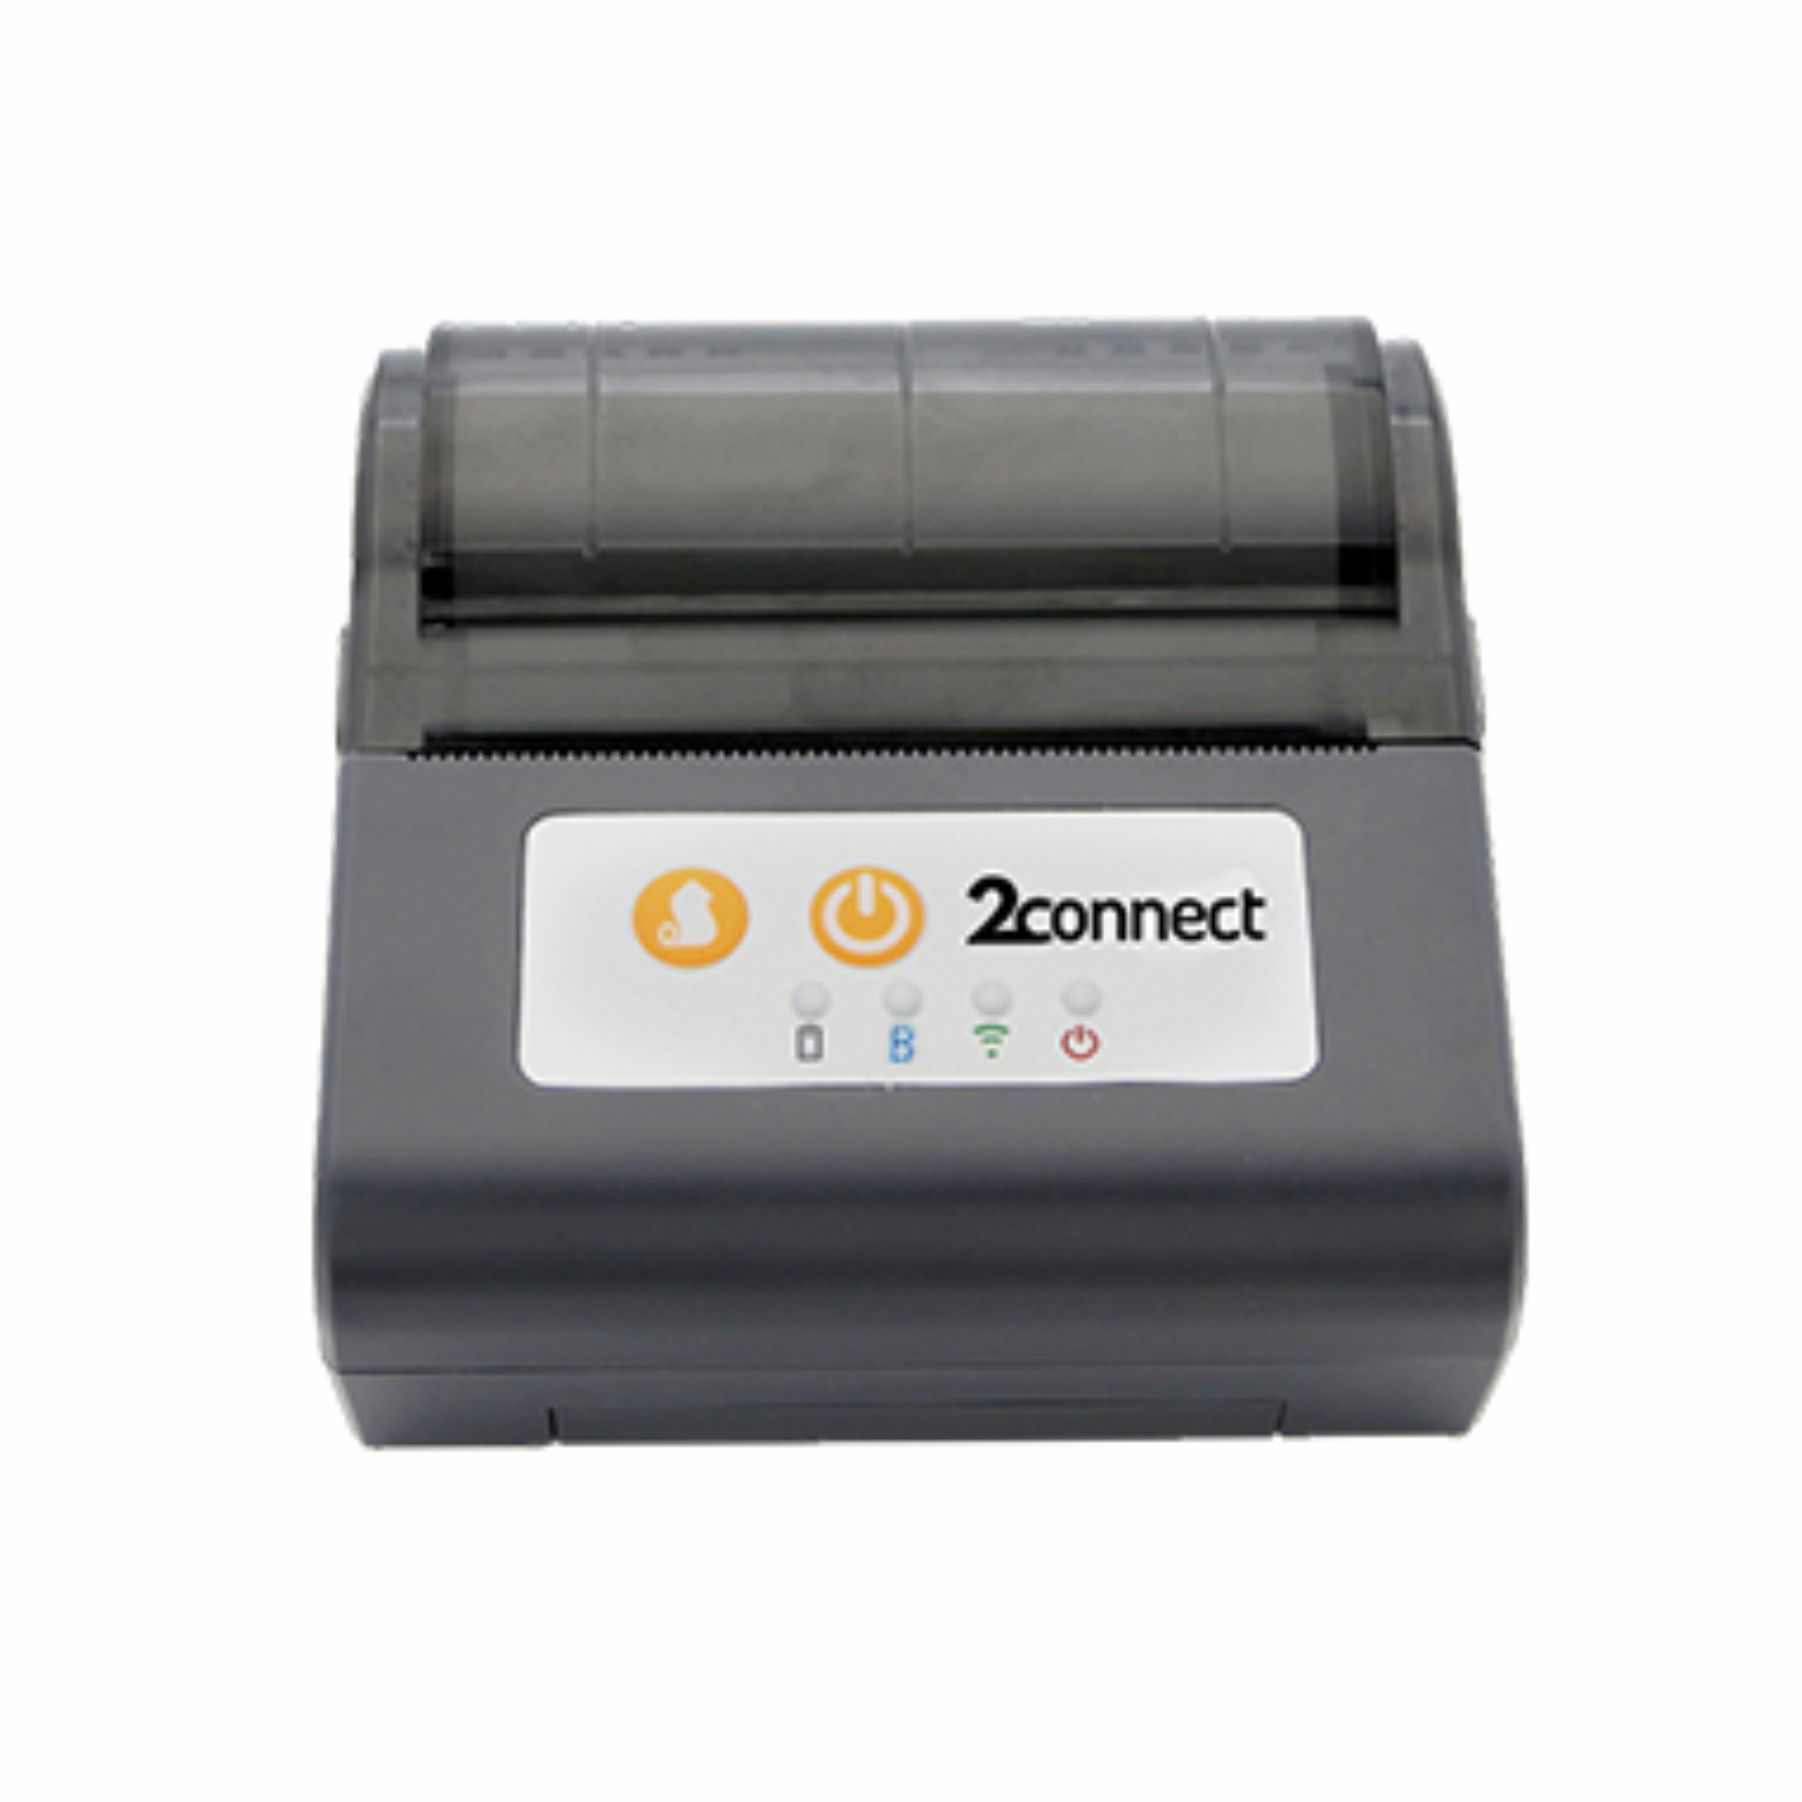 2connect Printer 80mm Portable 2c-p80-c Bluetooth  ( 3pul)